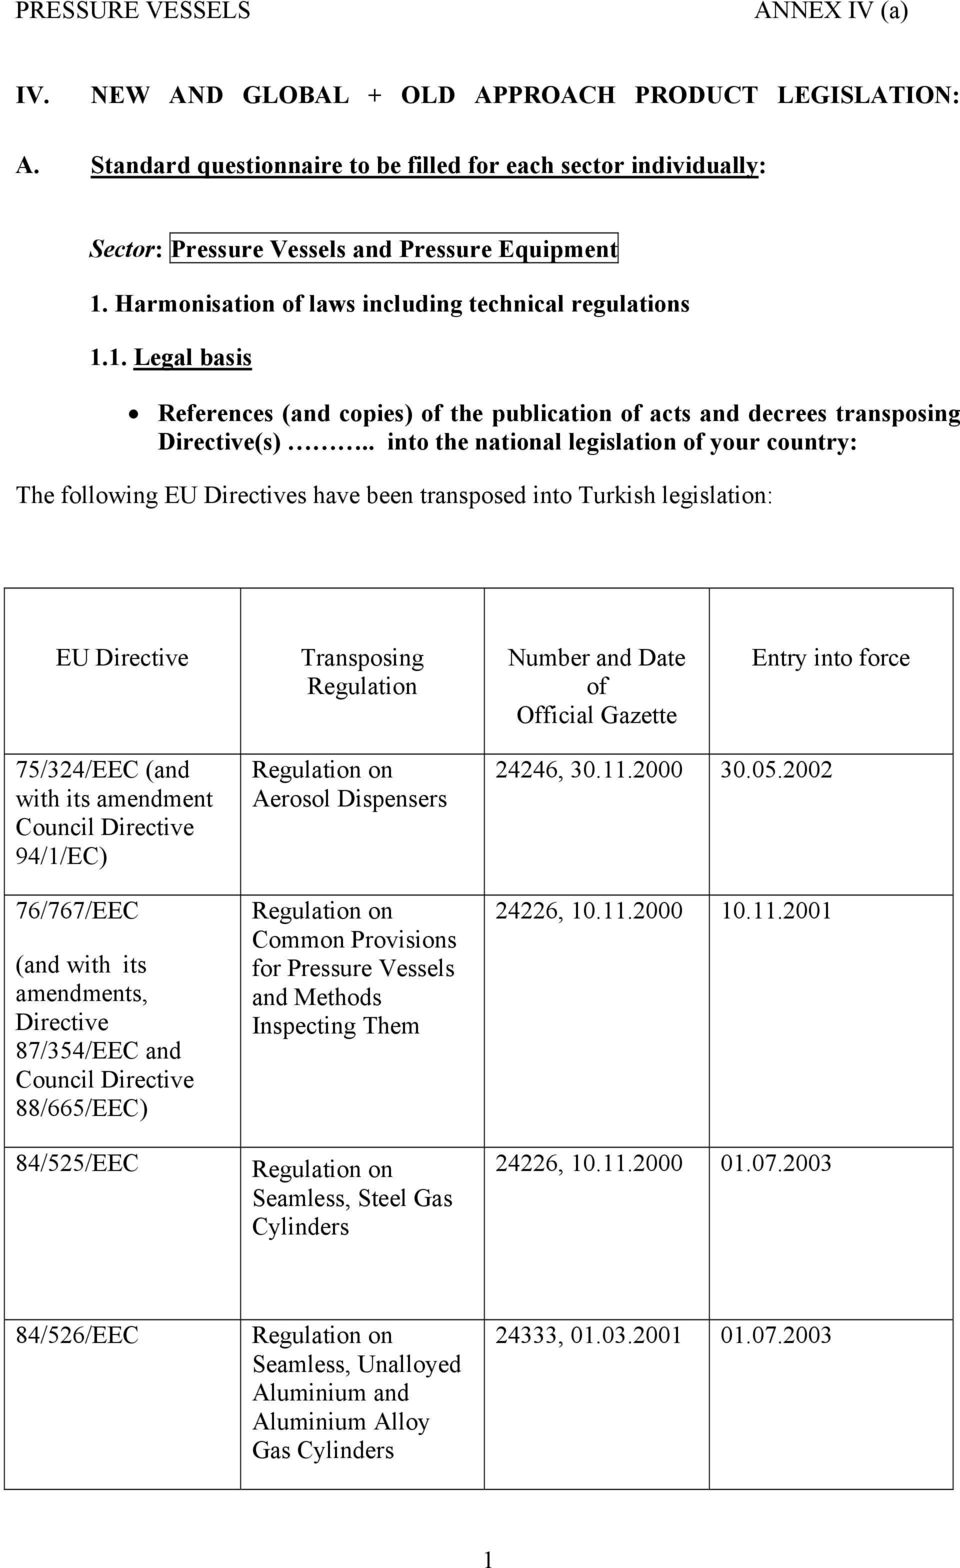 . into the national legislation of your country: The following EU Directives have been transposed into Turkish legislation: EU Directive Transposing Regulation Number and Date of Official Gazette